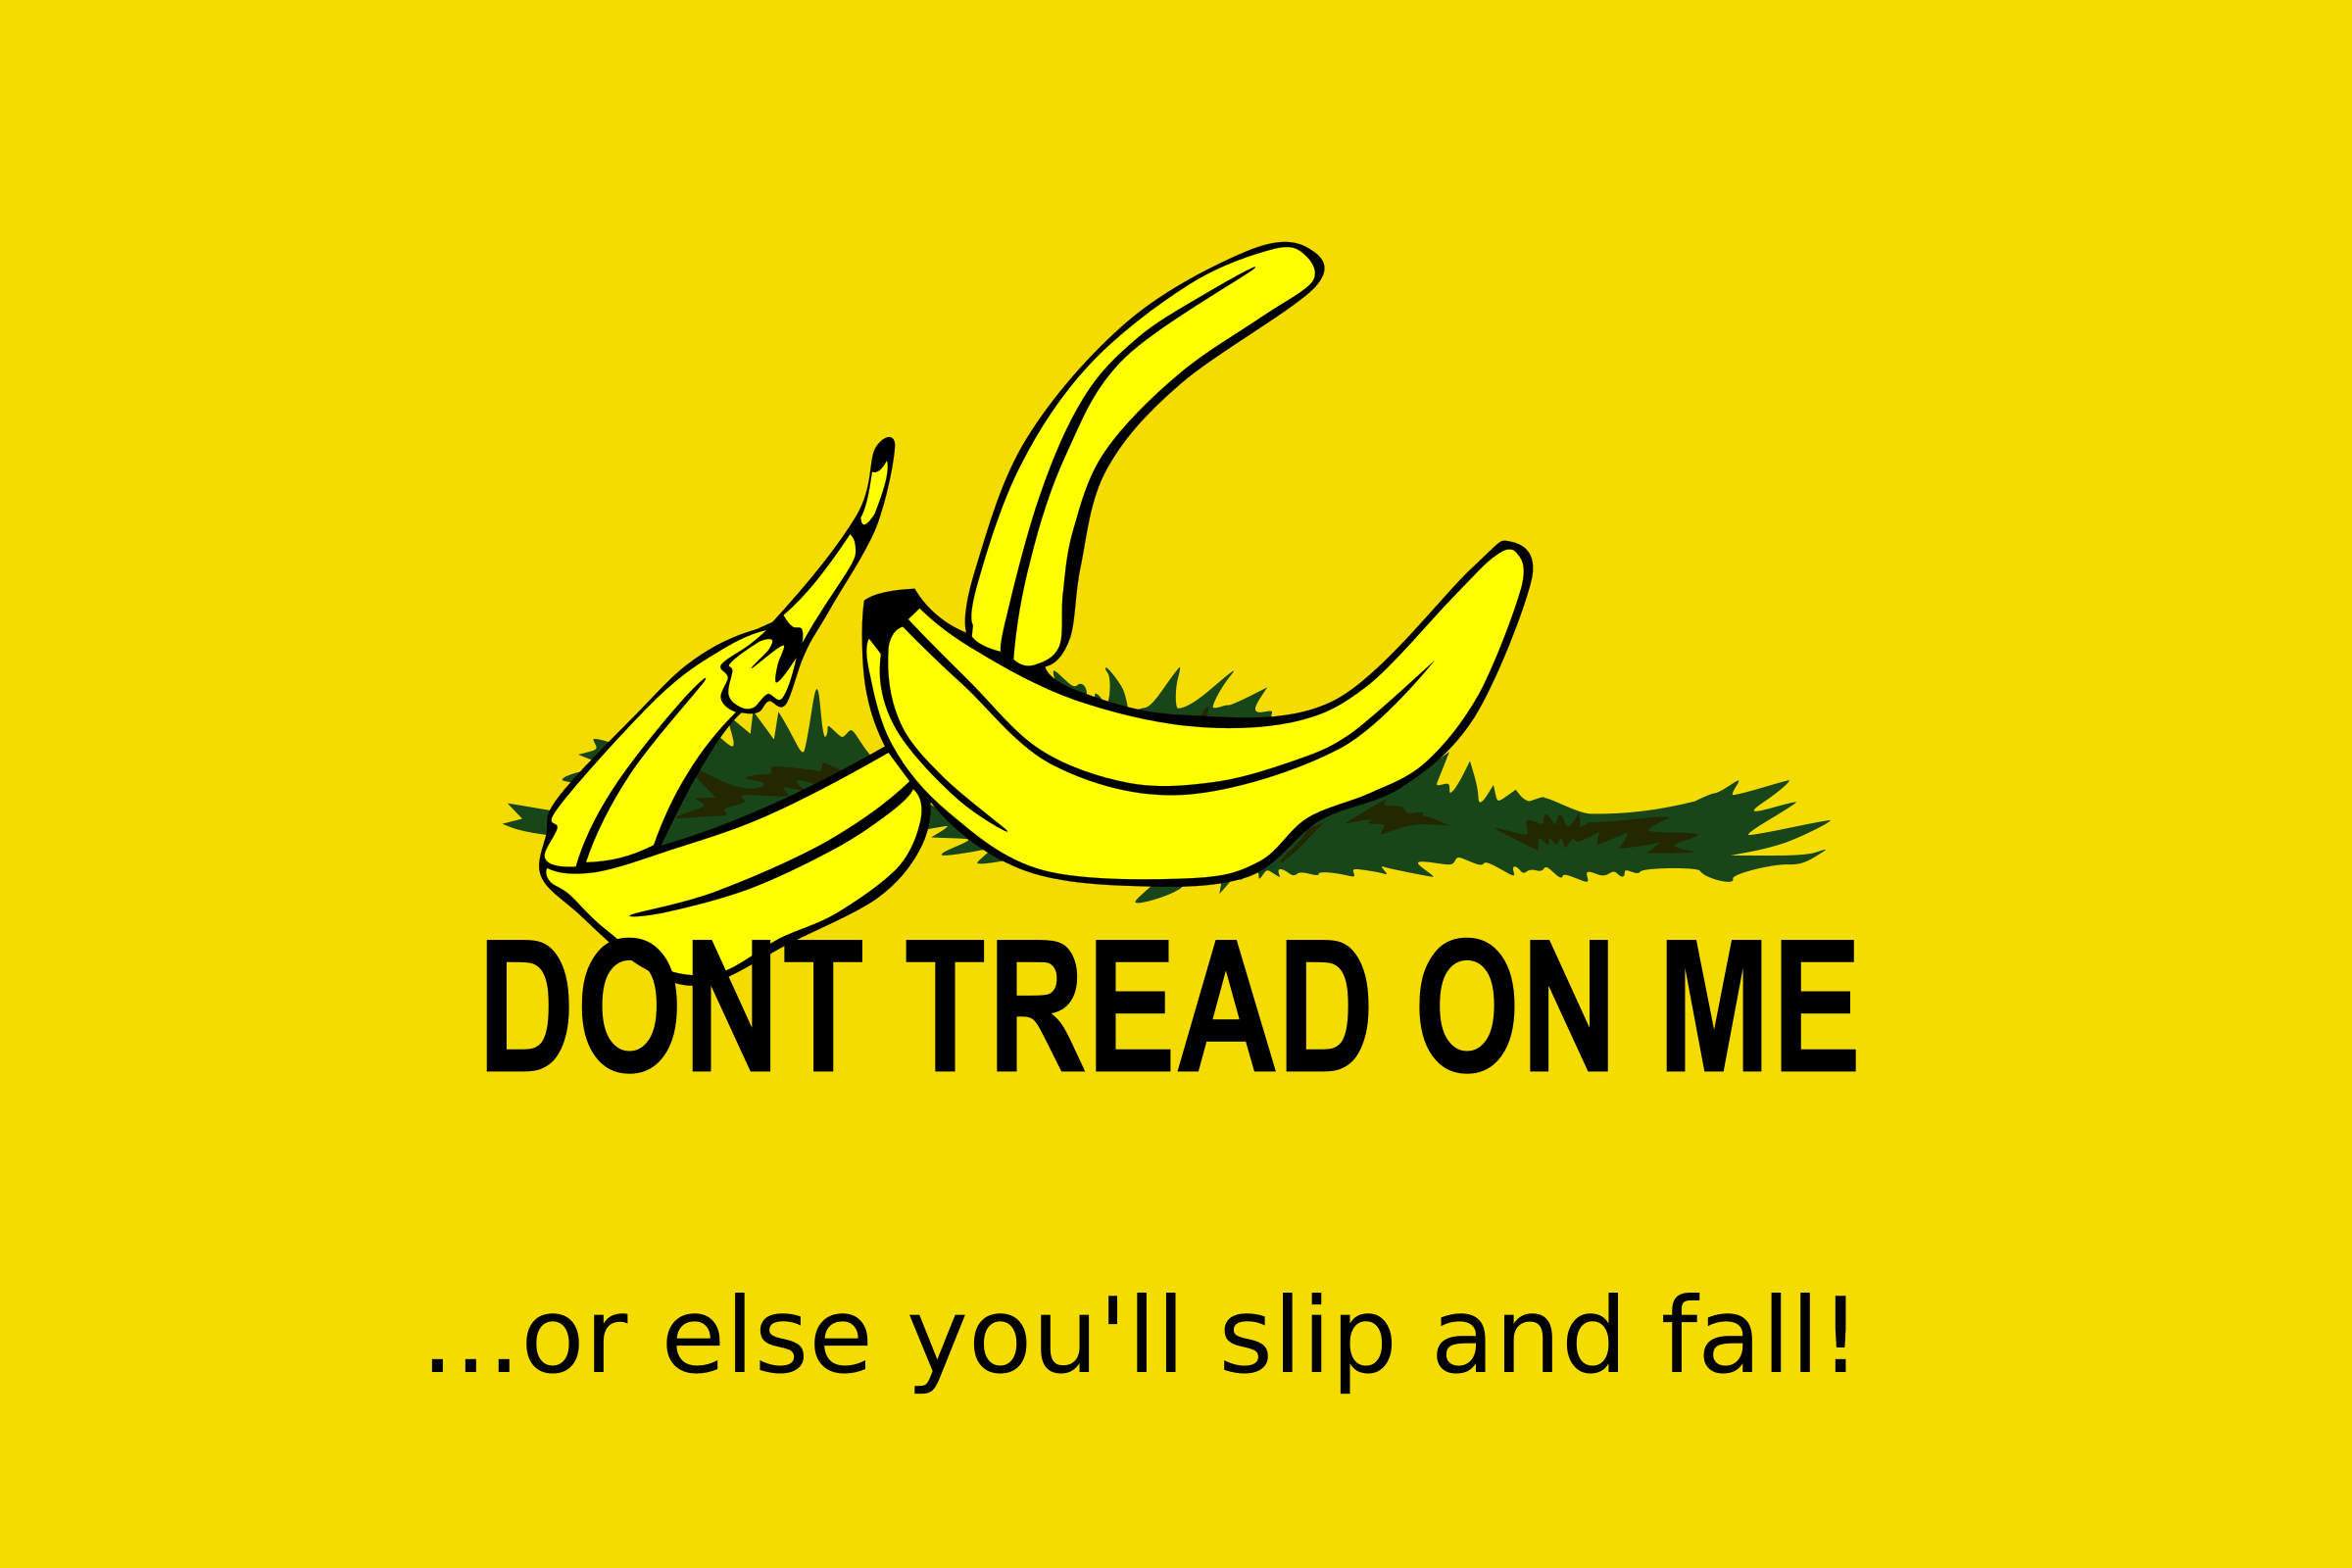 Don't Tread On Me (Banana Peel Remix) by Nerd42